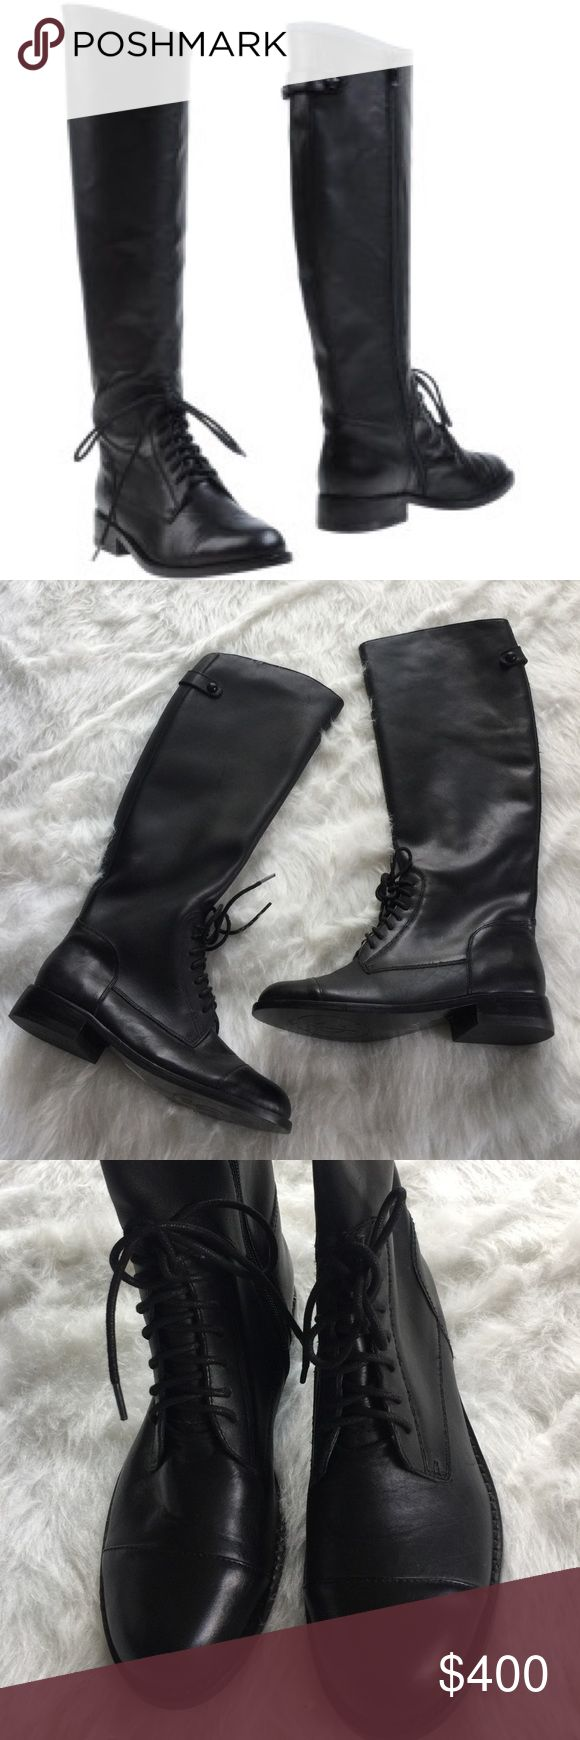 [Juicy Couture] •Riding Lace Up Boots• Adorable Juicy Couture rider lace up leather boots. Only worn once, in great condition! full zipper on inside of each boot. Juicy Couture Shoes Lace Up Boots